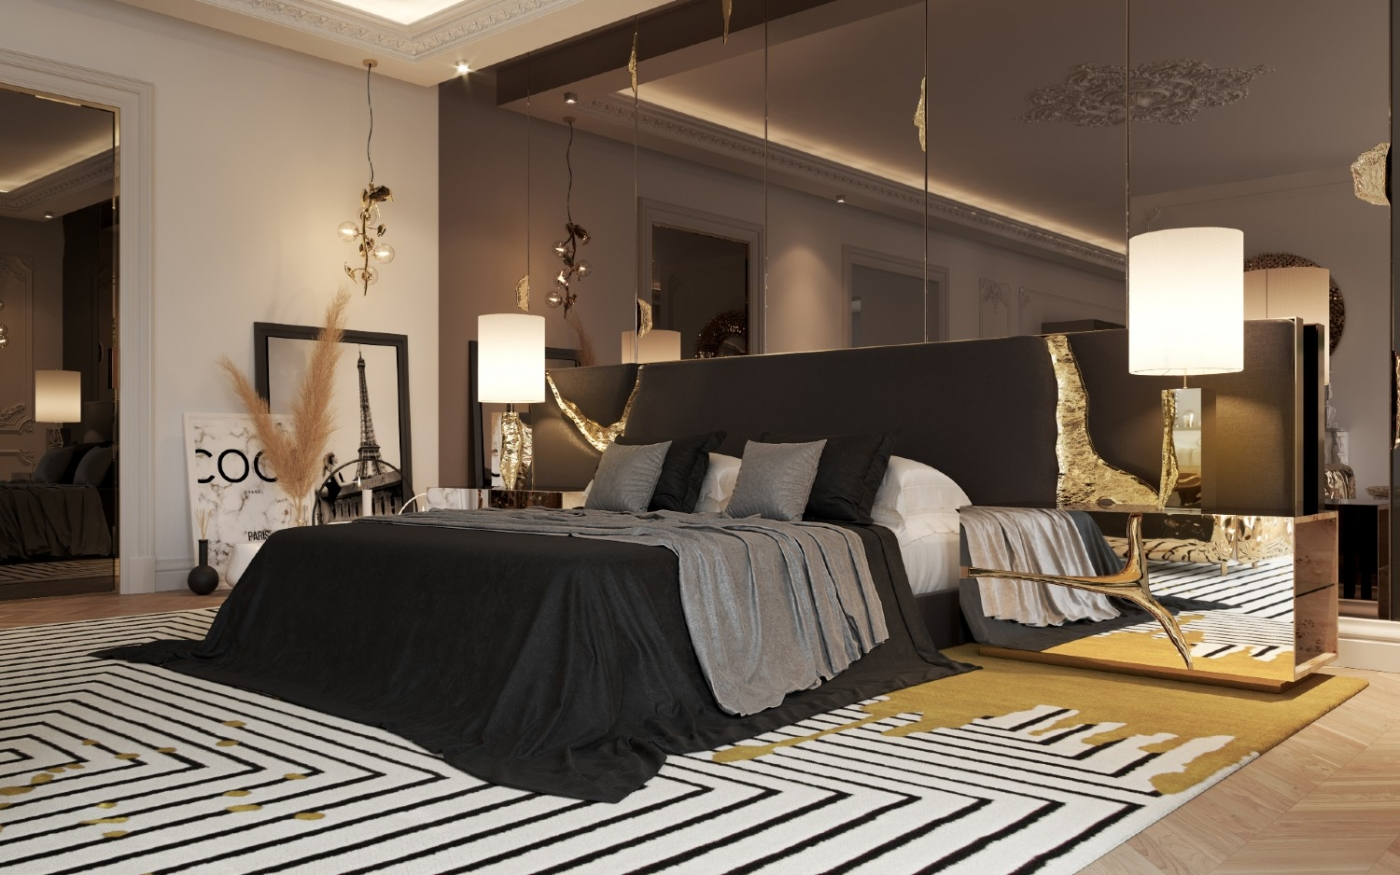 Shop The Look Of A Private Master Suite In A Parisian Penthouse ft private master suite Shop The Look Of A Private Master Suite In A Parisian Penthouse Shop The Look Of A Private Master Suite In A Parisian Penthouse ft 1 1400x875